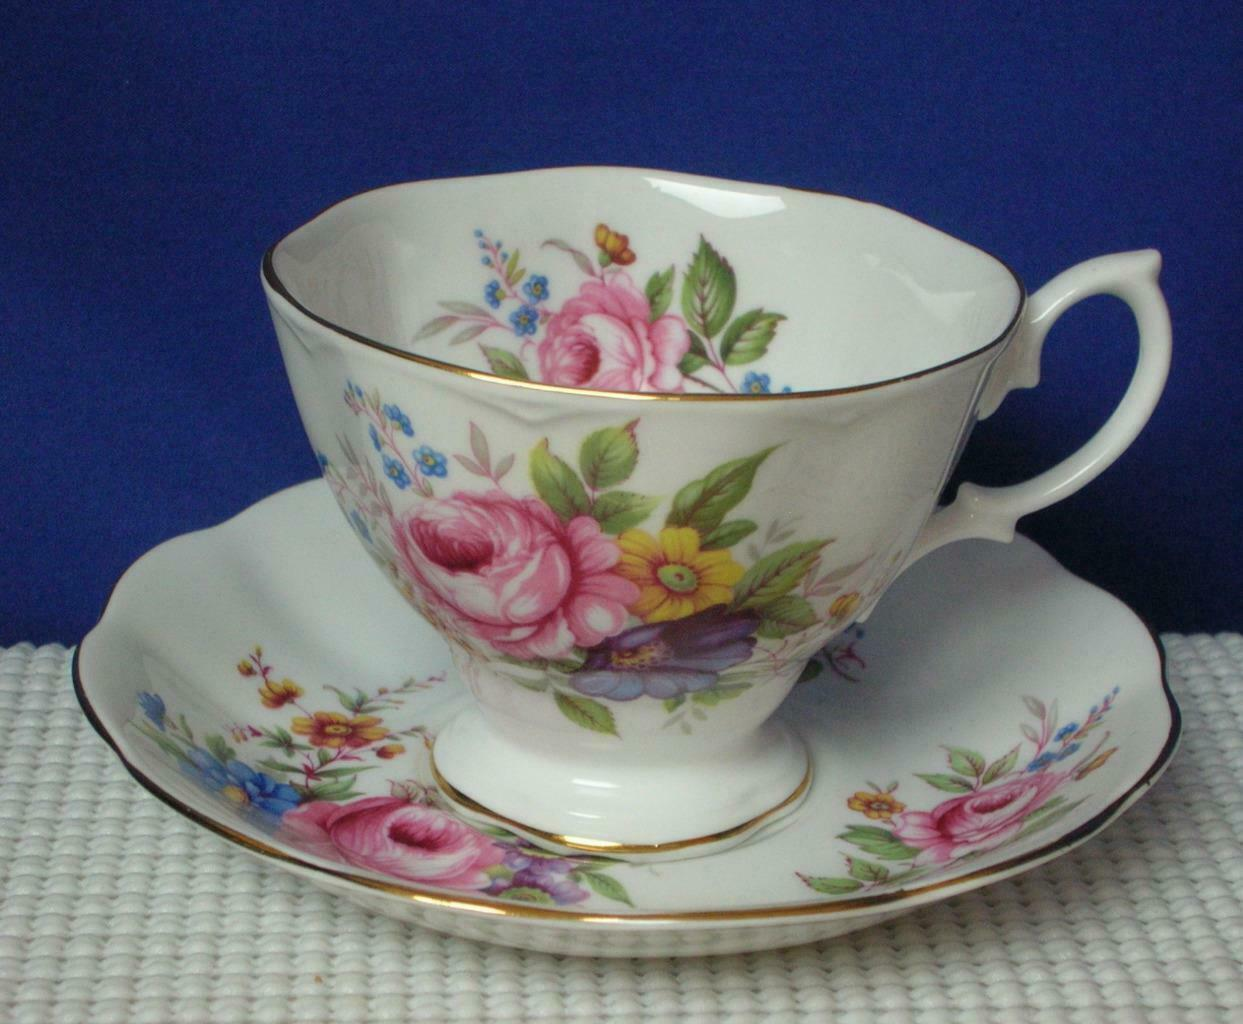 Primary image for Vintage TEA CUP & SAUCER Royal Albert PINK CABBAGE ROSES Blue Yellow Floral EUC